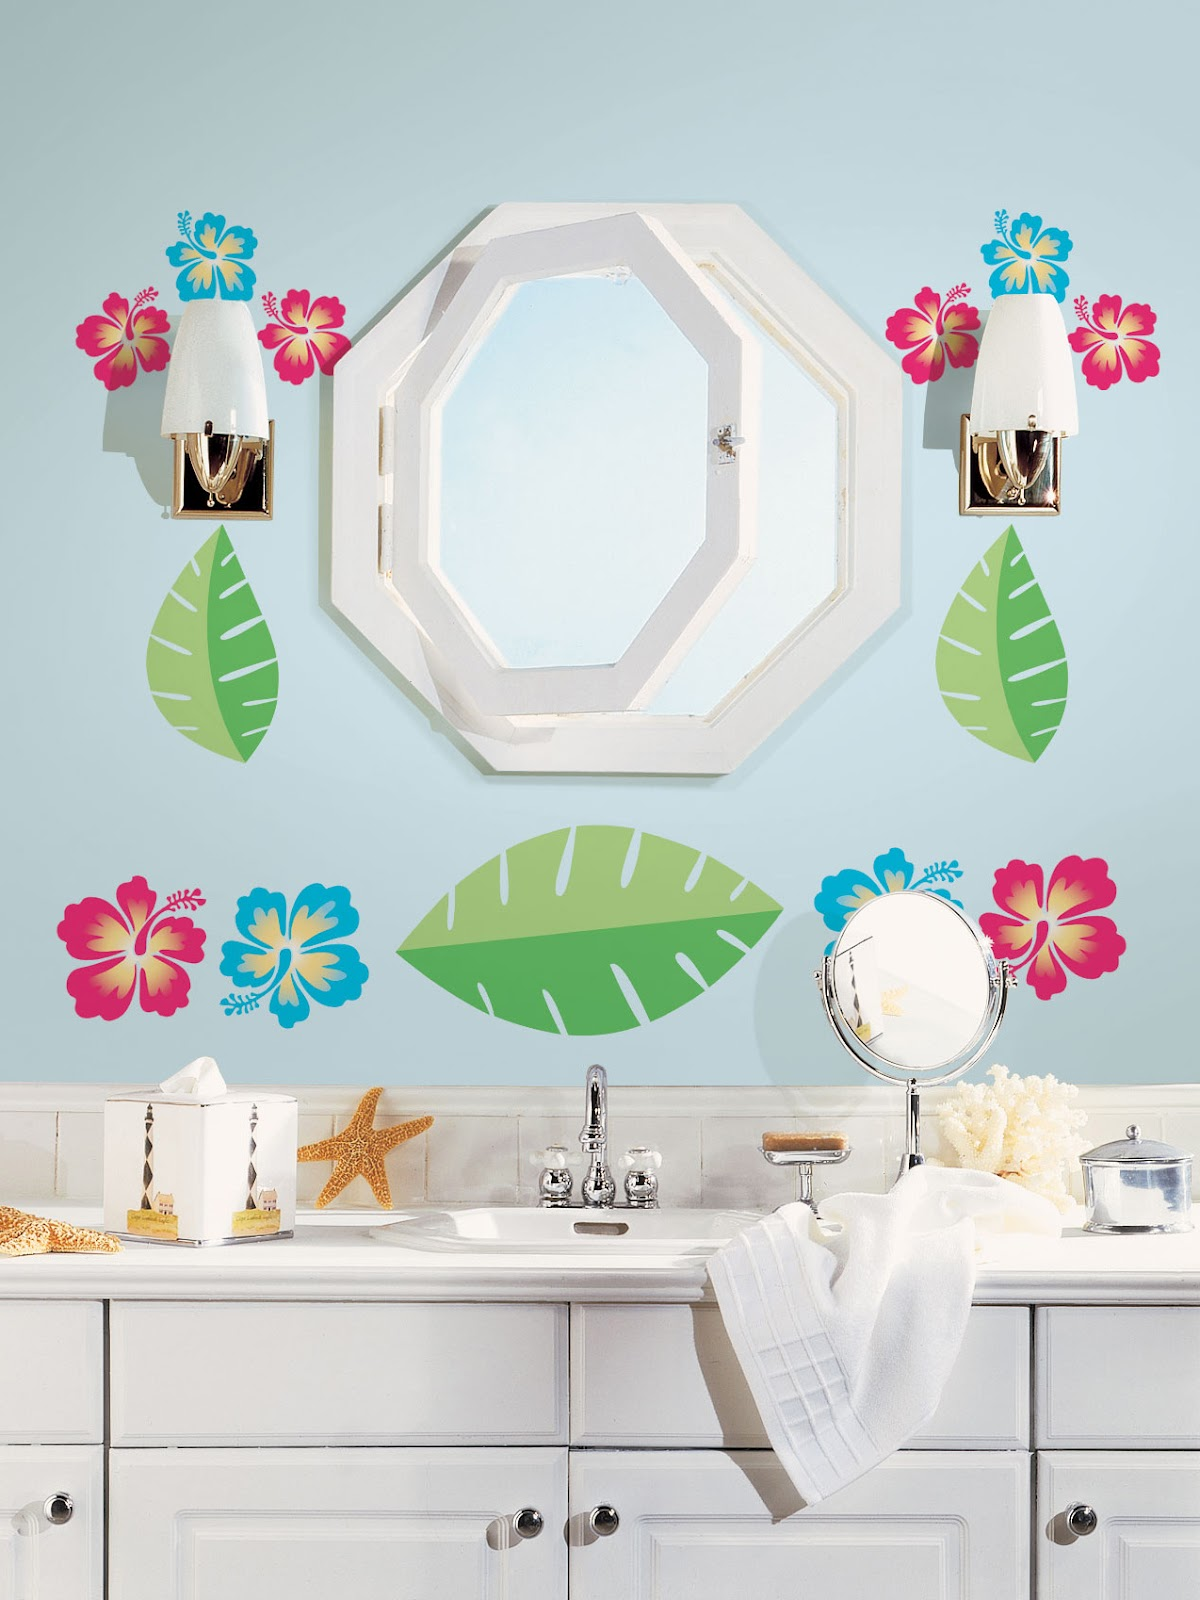 childrens bathroom decor. childrens bathroom decorations bathroom